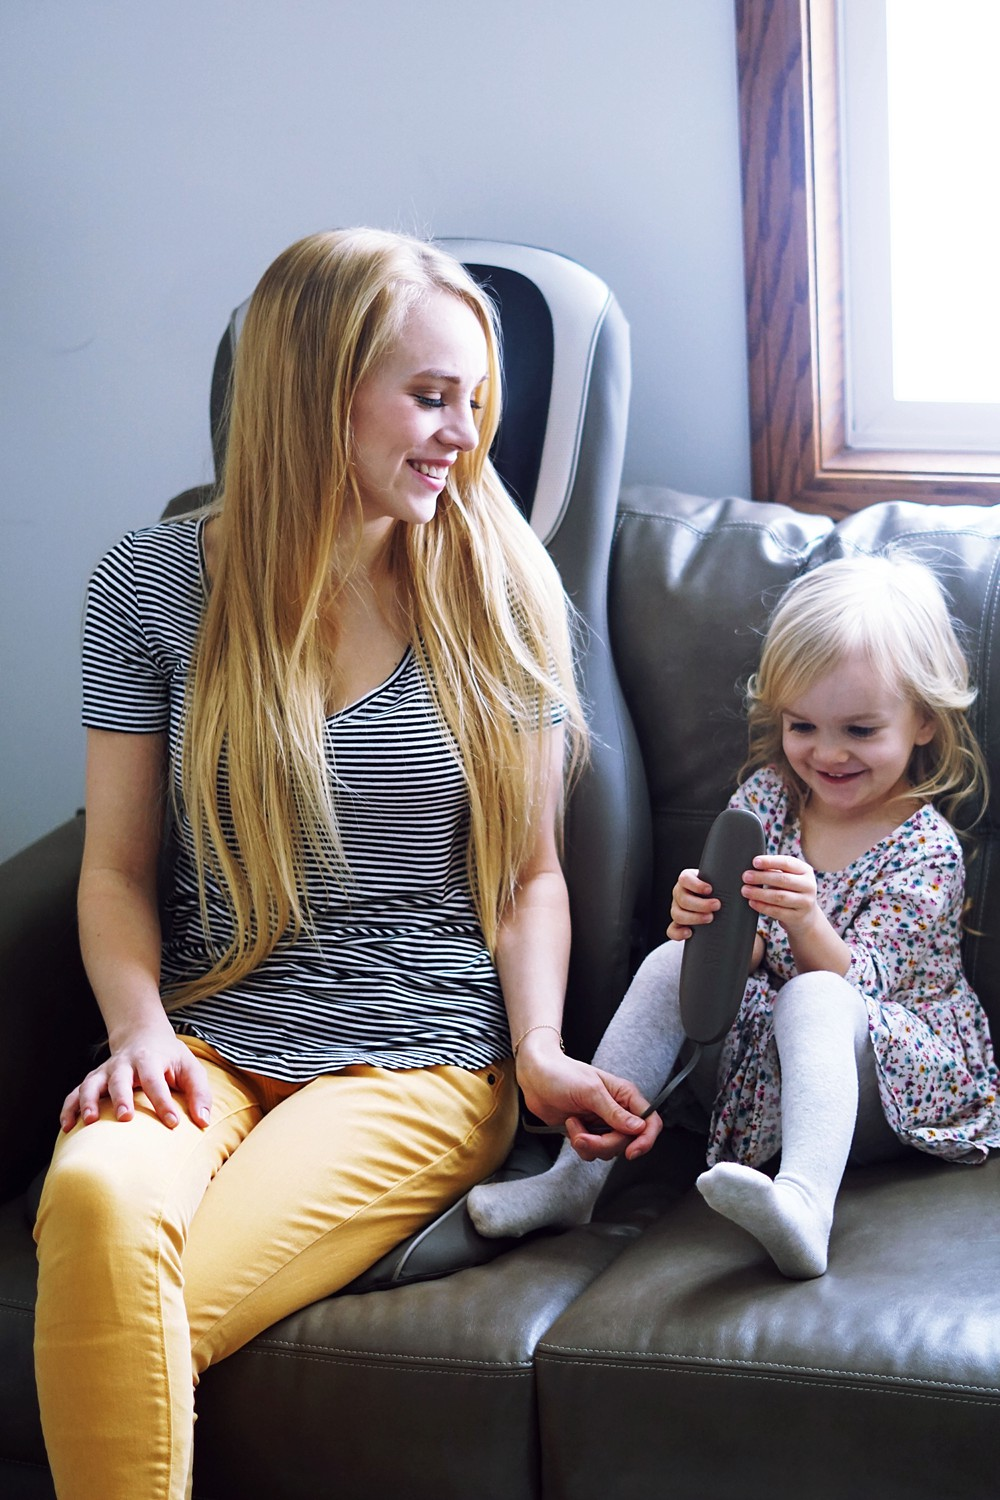 5 Ways to Relax as a BUSY Mom by Rachael Burgess